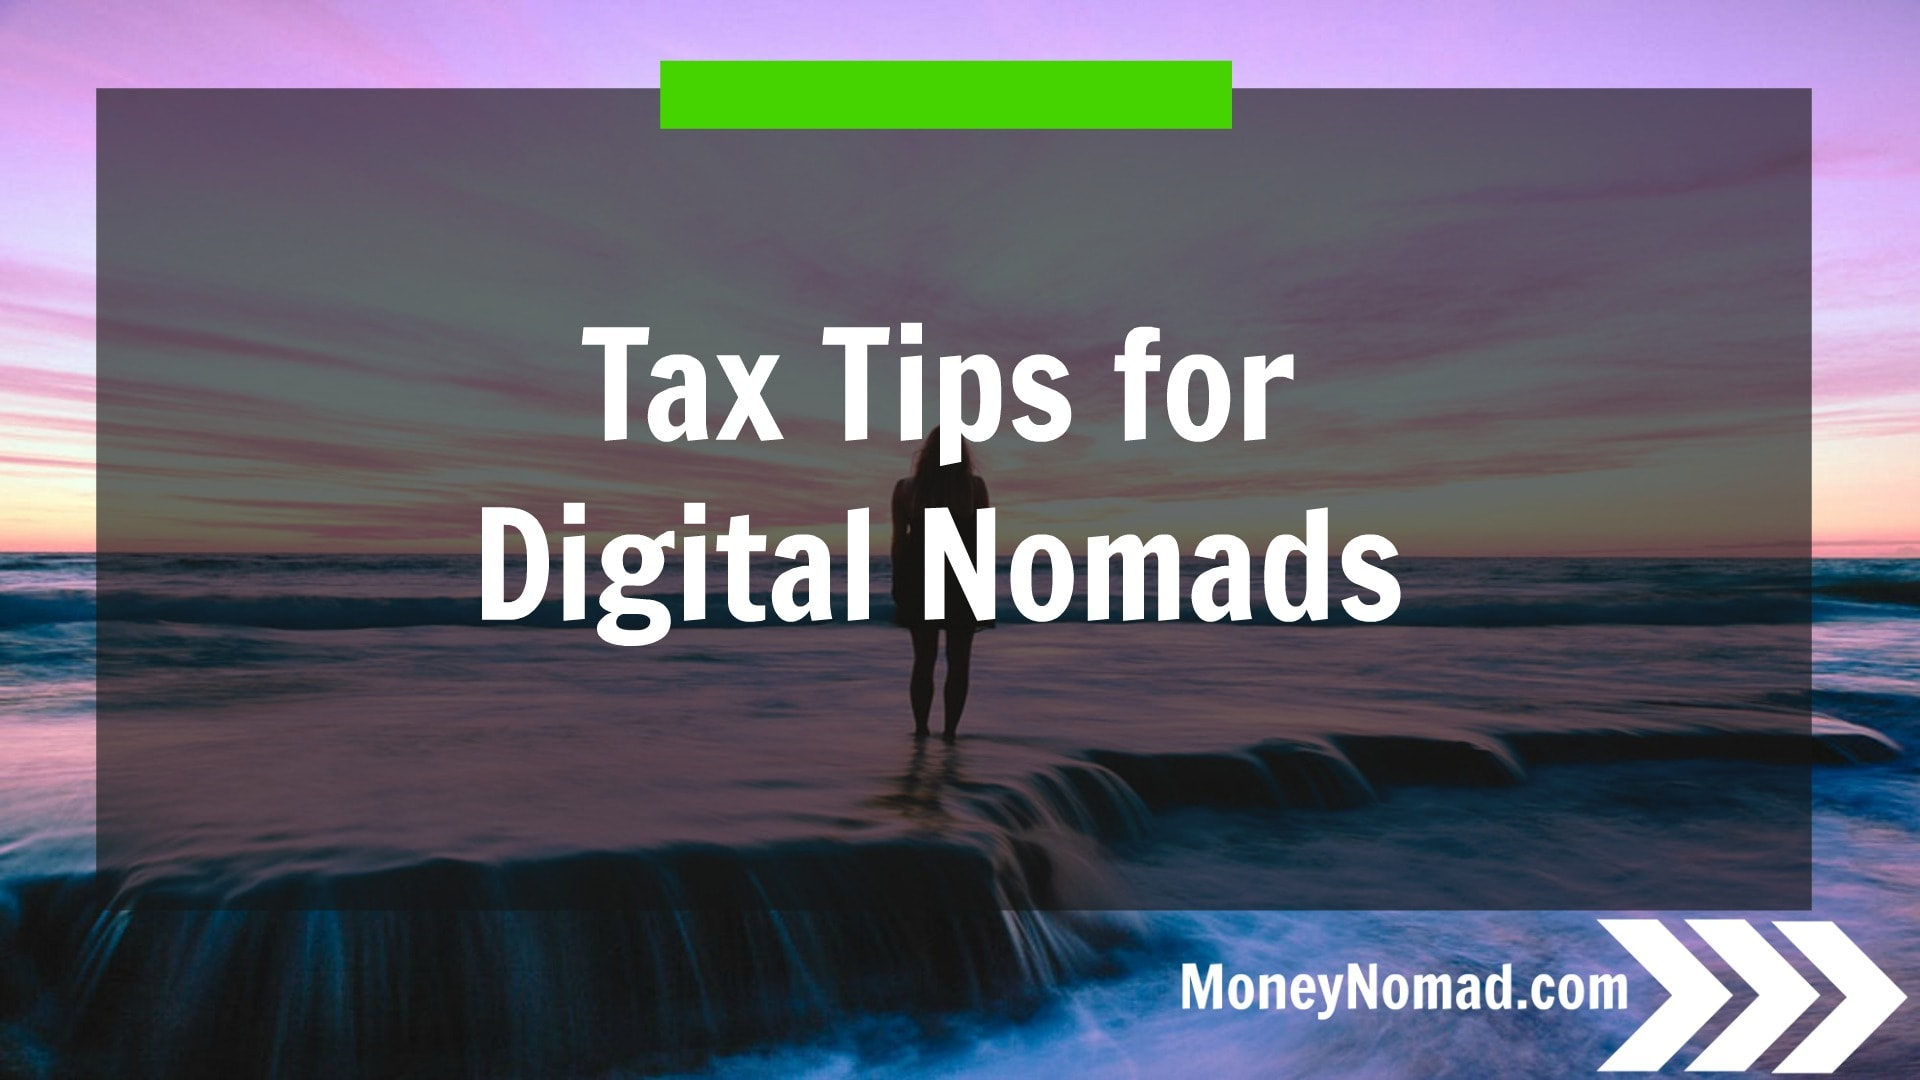 mn-tax-tips-for-digital-nomads